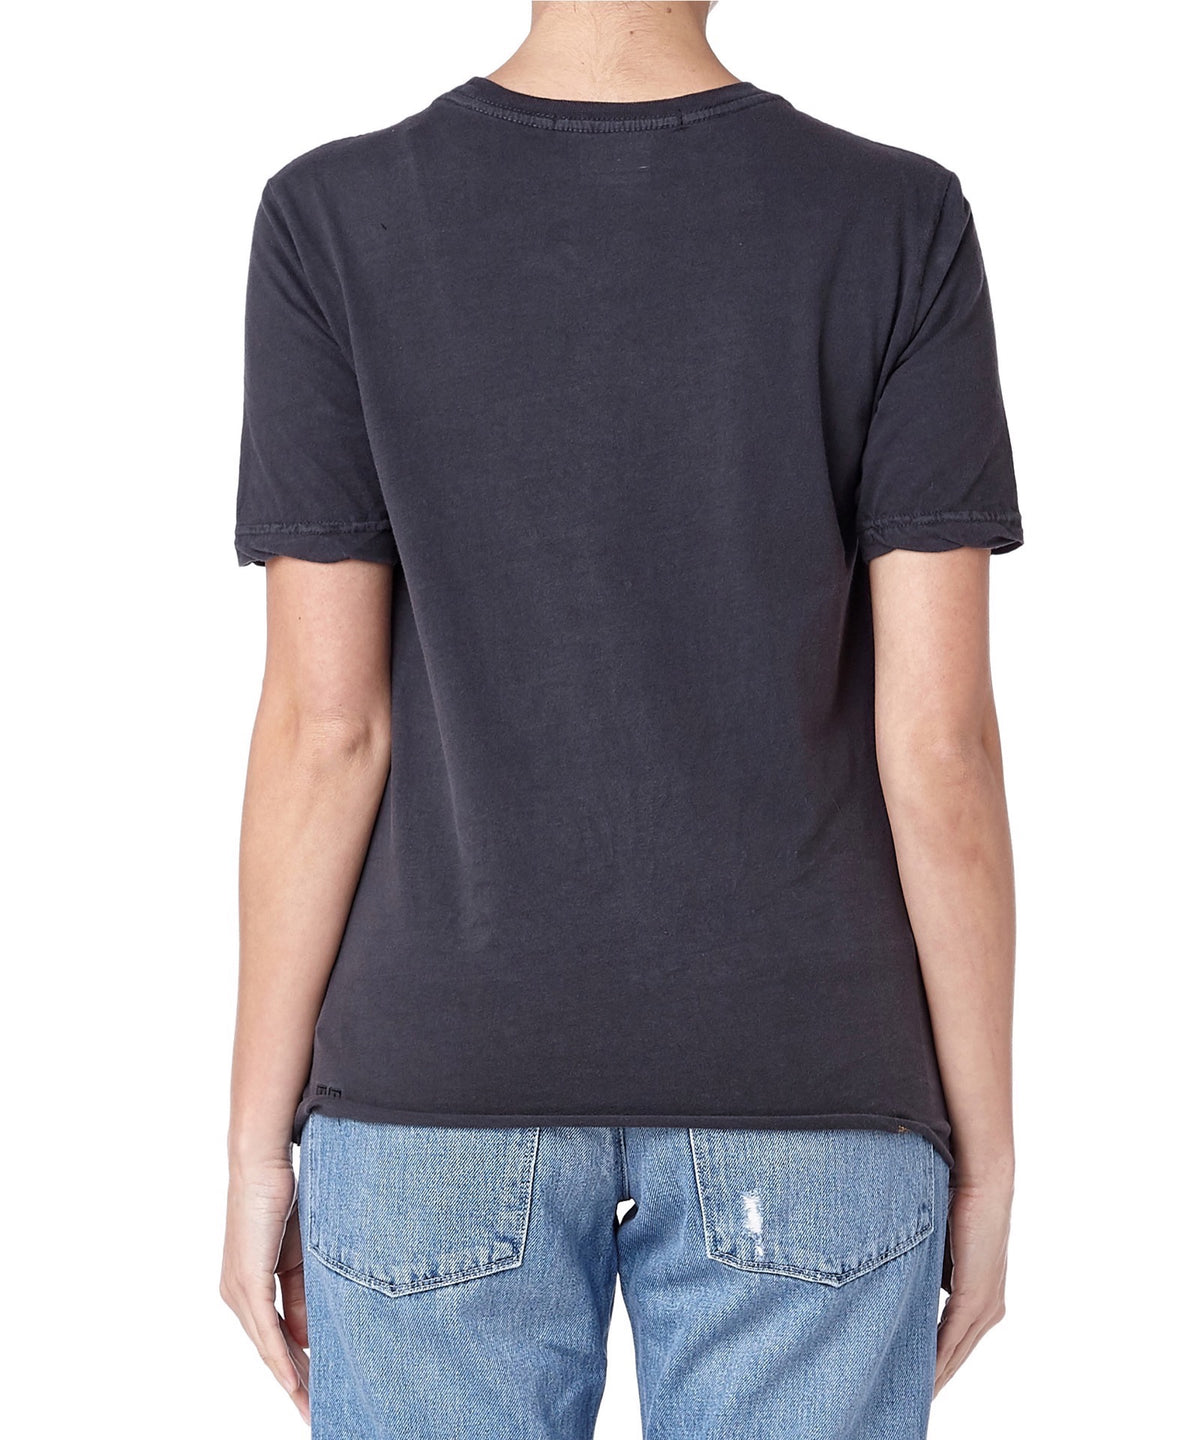 Ksubi Pseudo Women Grey T-Shirt